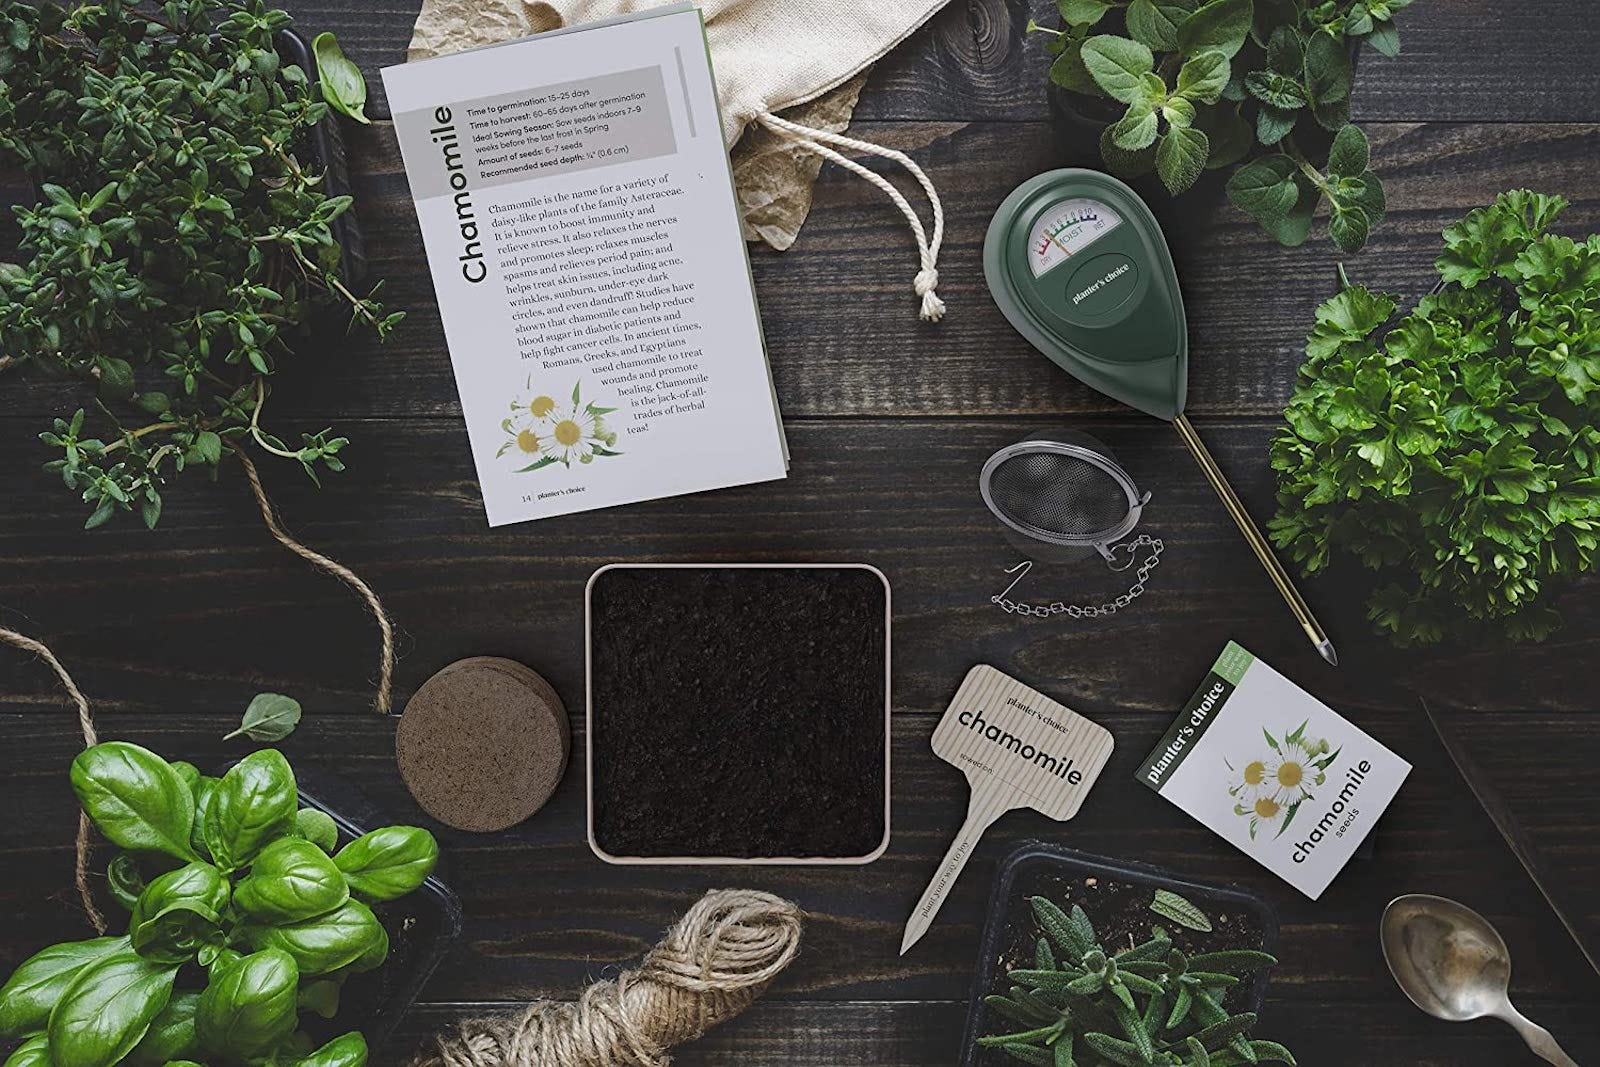 Herbs scattered across a wooden surface, along with a pot of soil and a growing guide